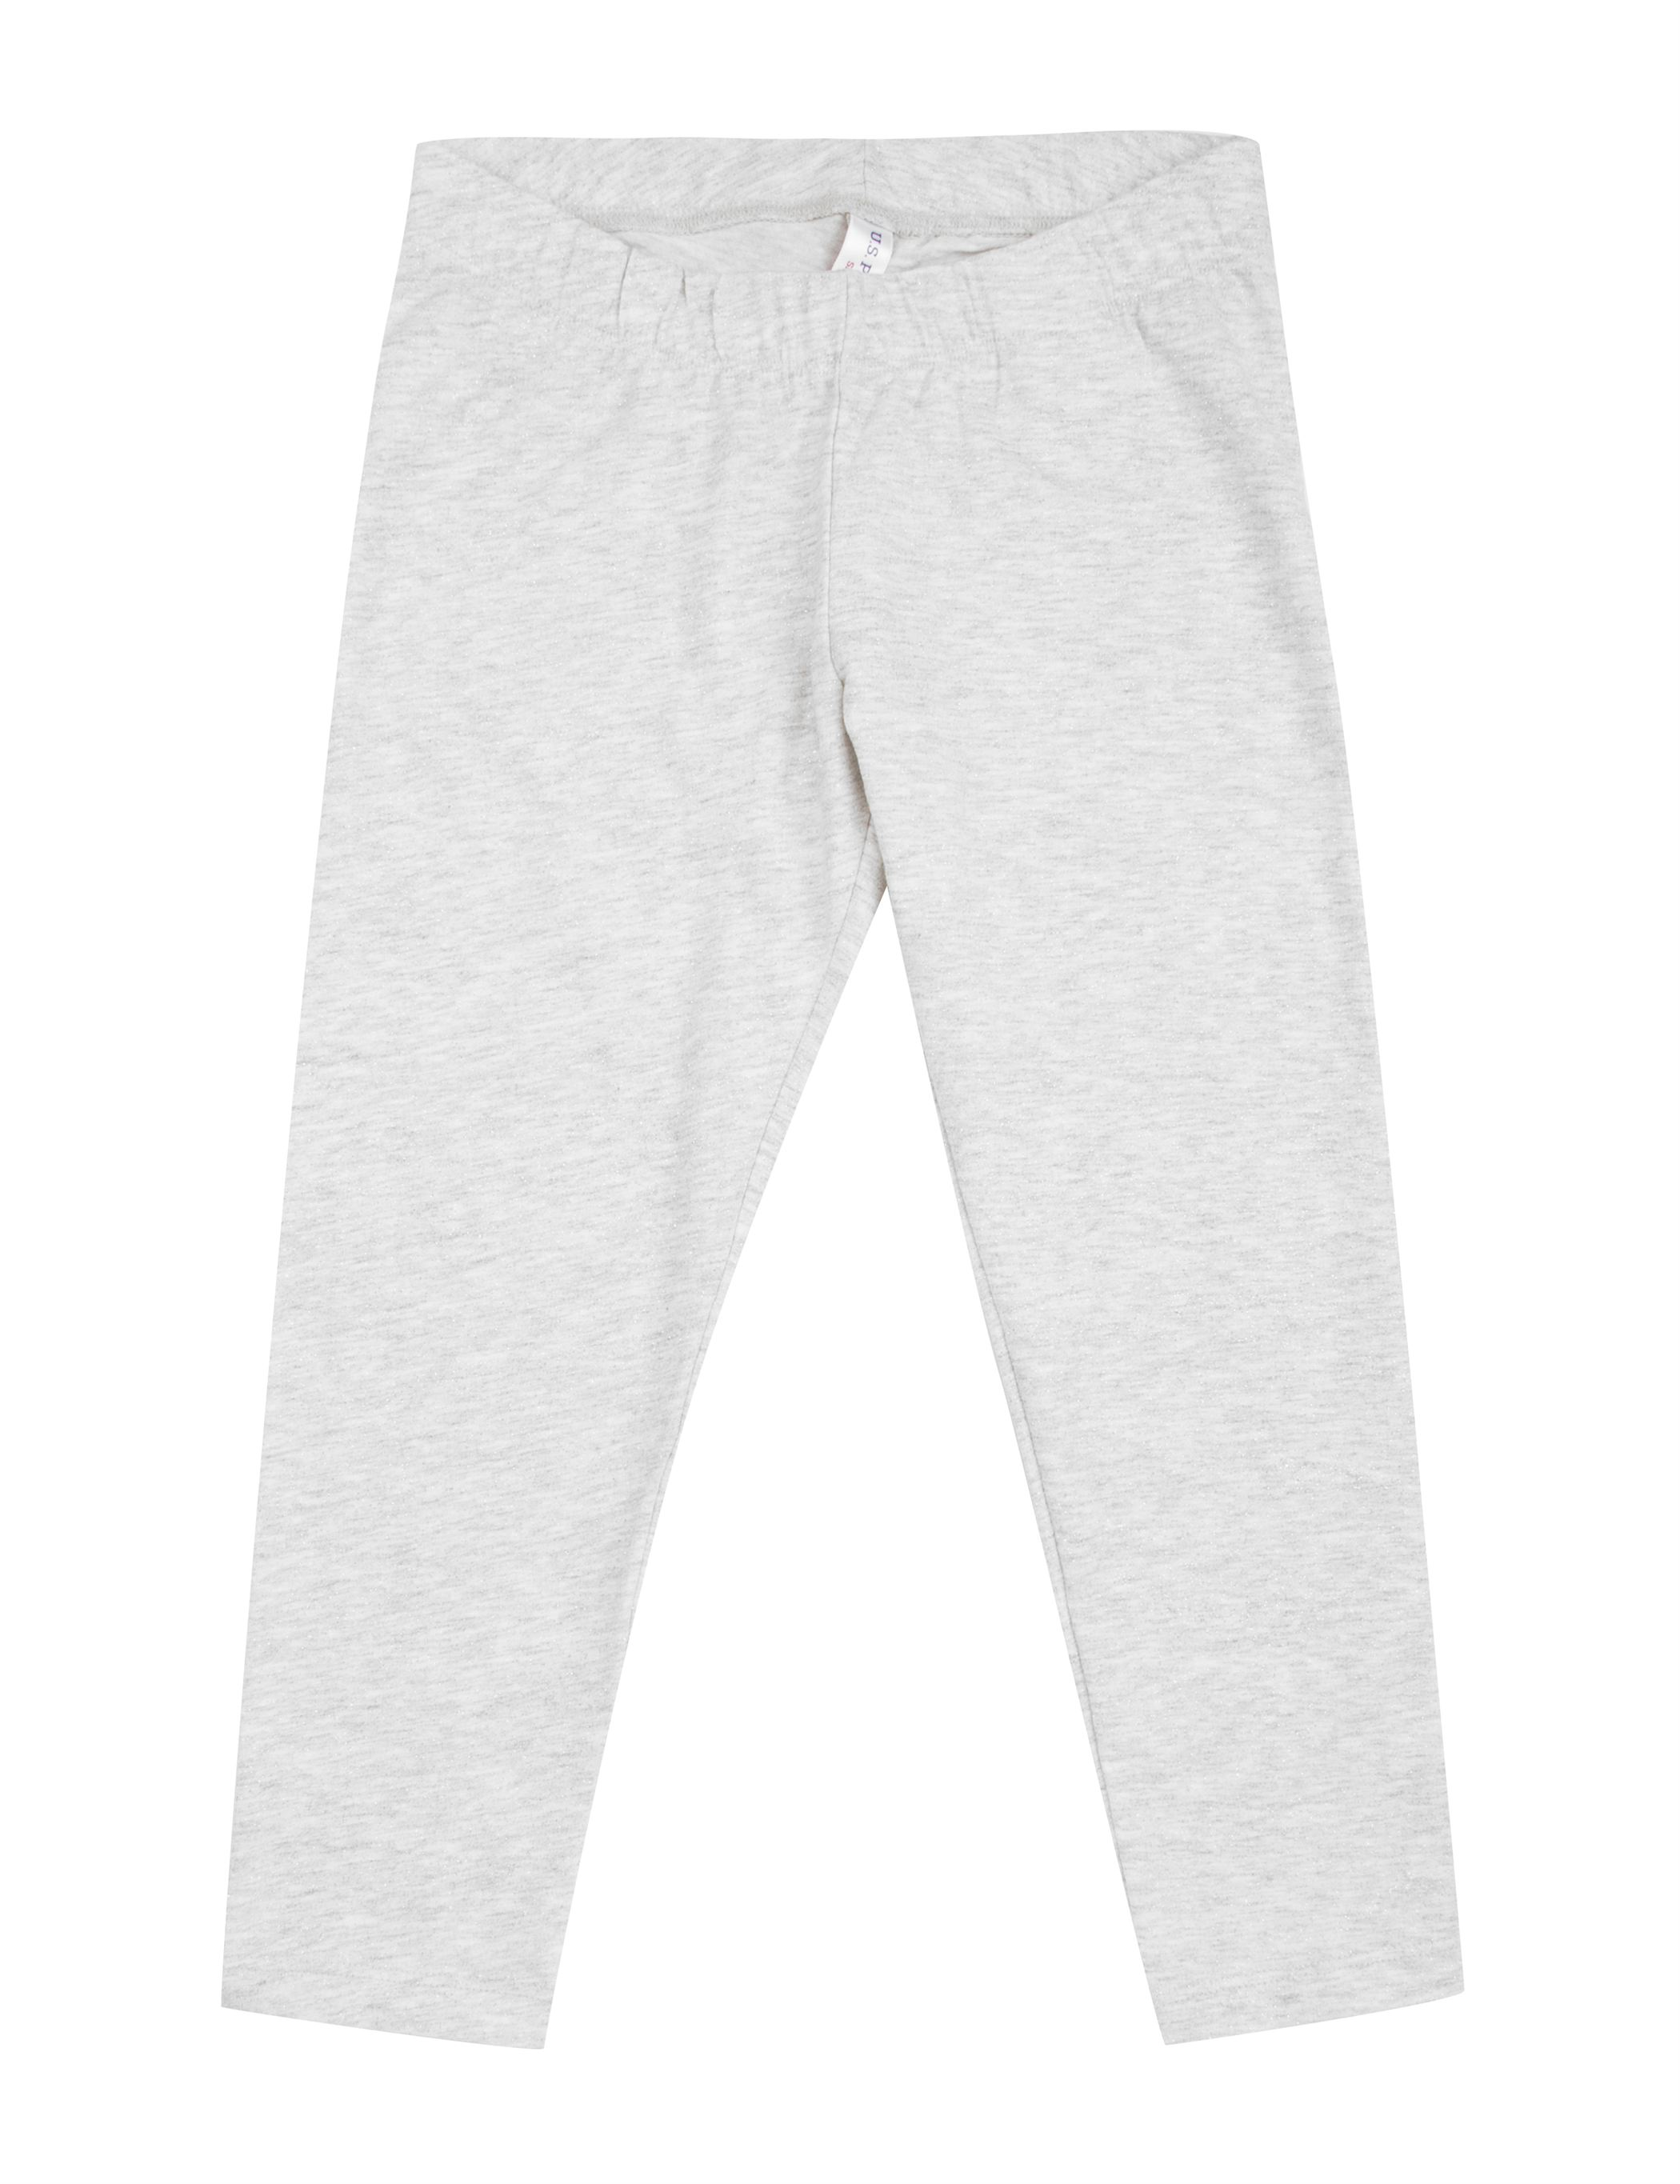 U.S. Polo Assn. Casual Solid Girls Leggings